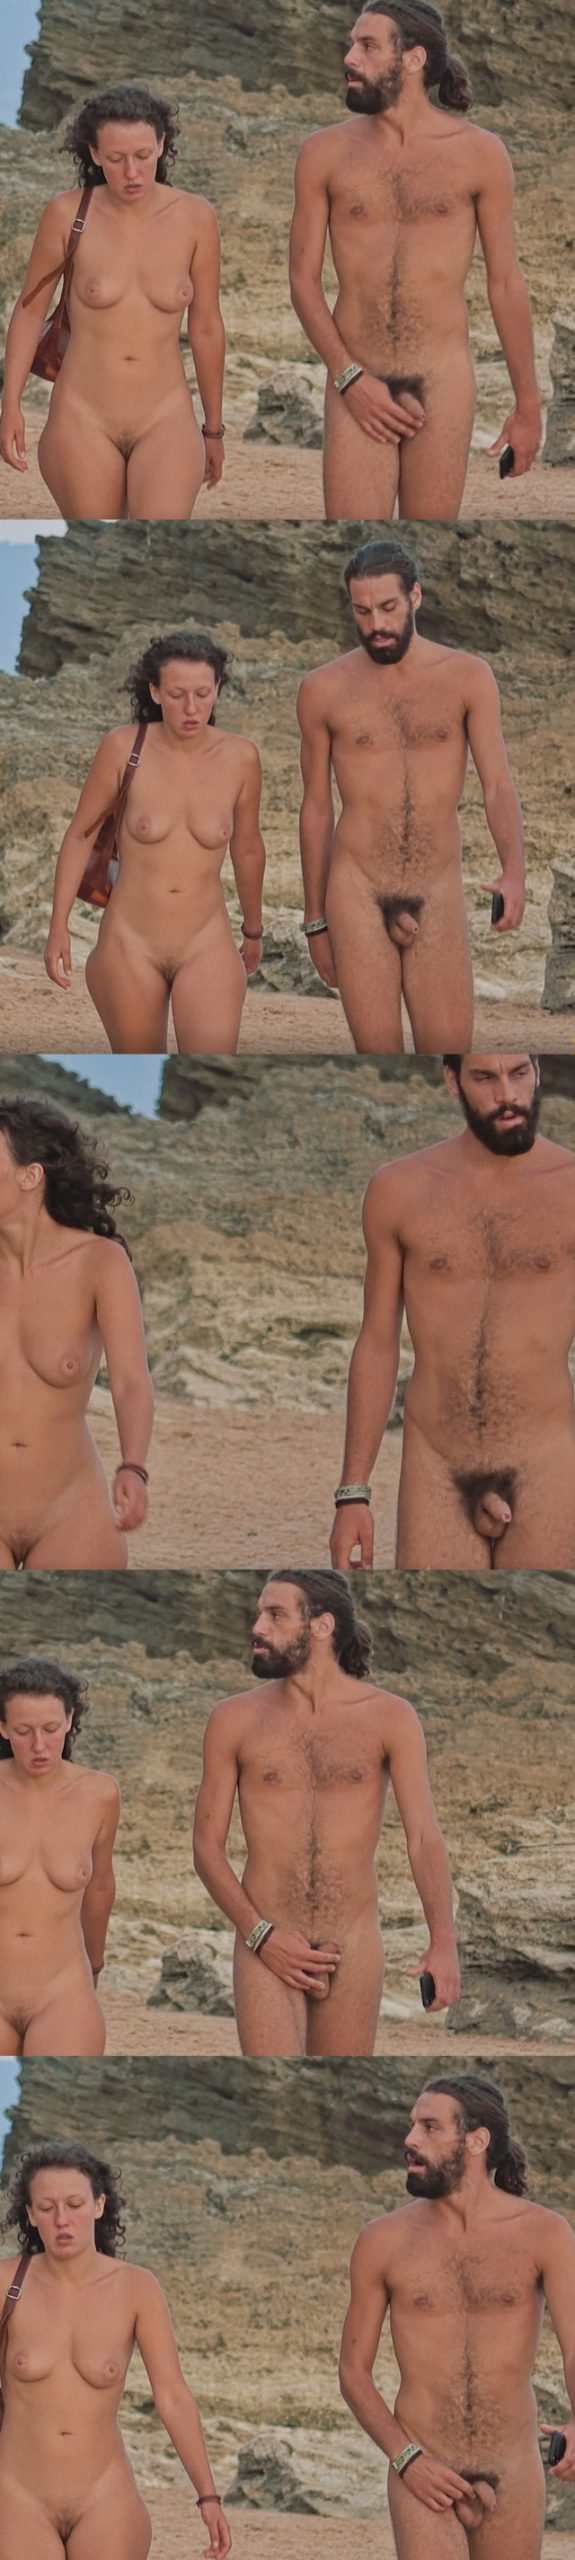 straight nudist man walking on the beach